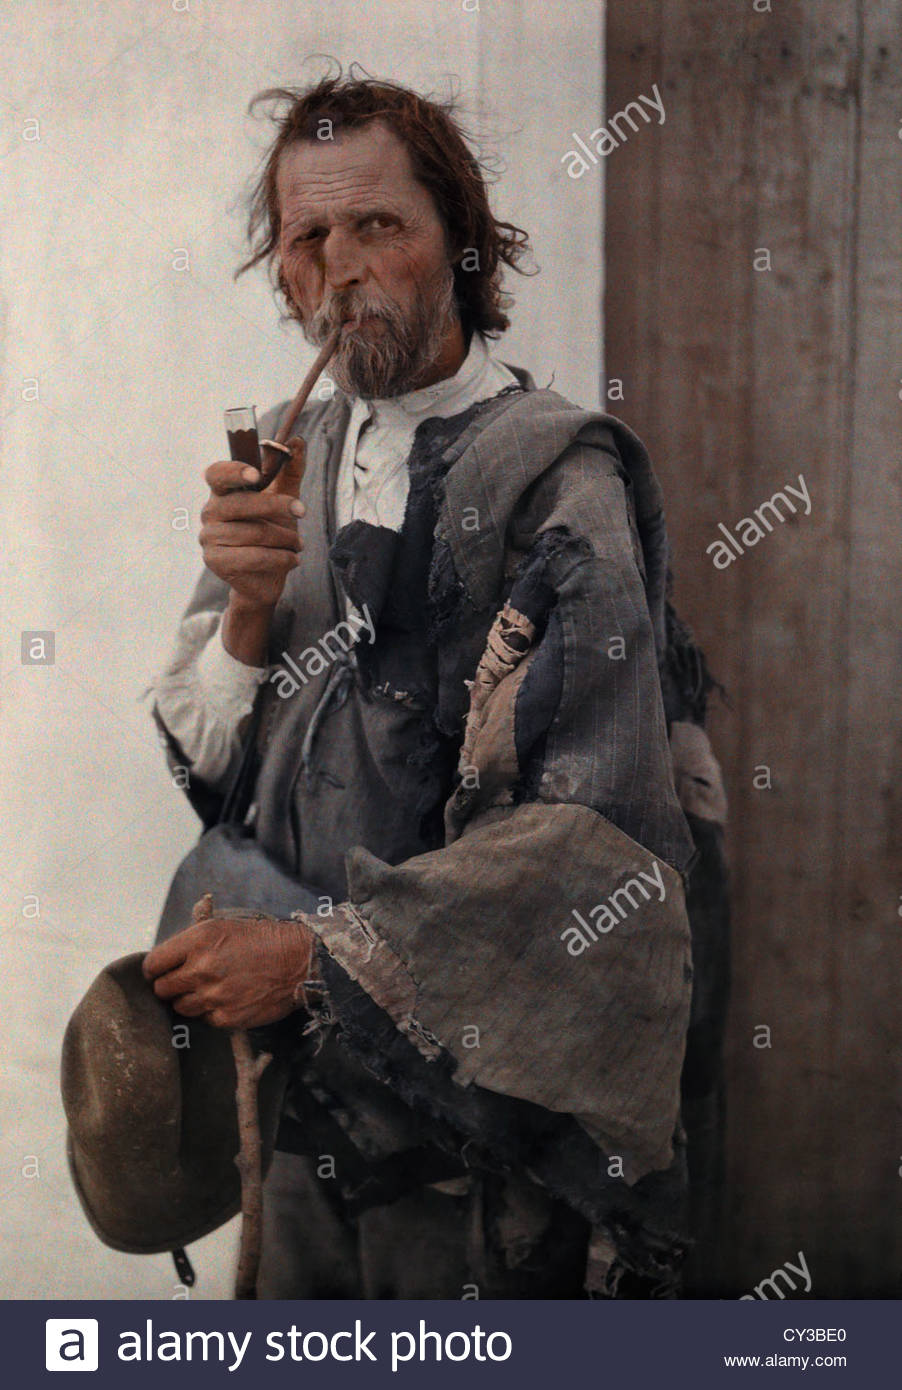 Portrait of a gypsy man smoking a pipe. Stock Photo